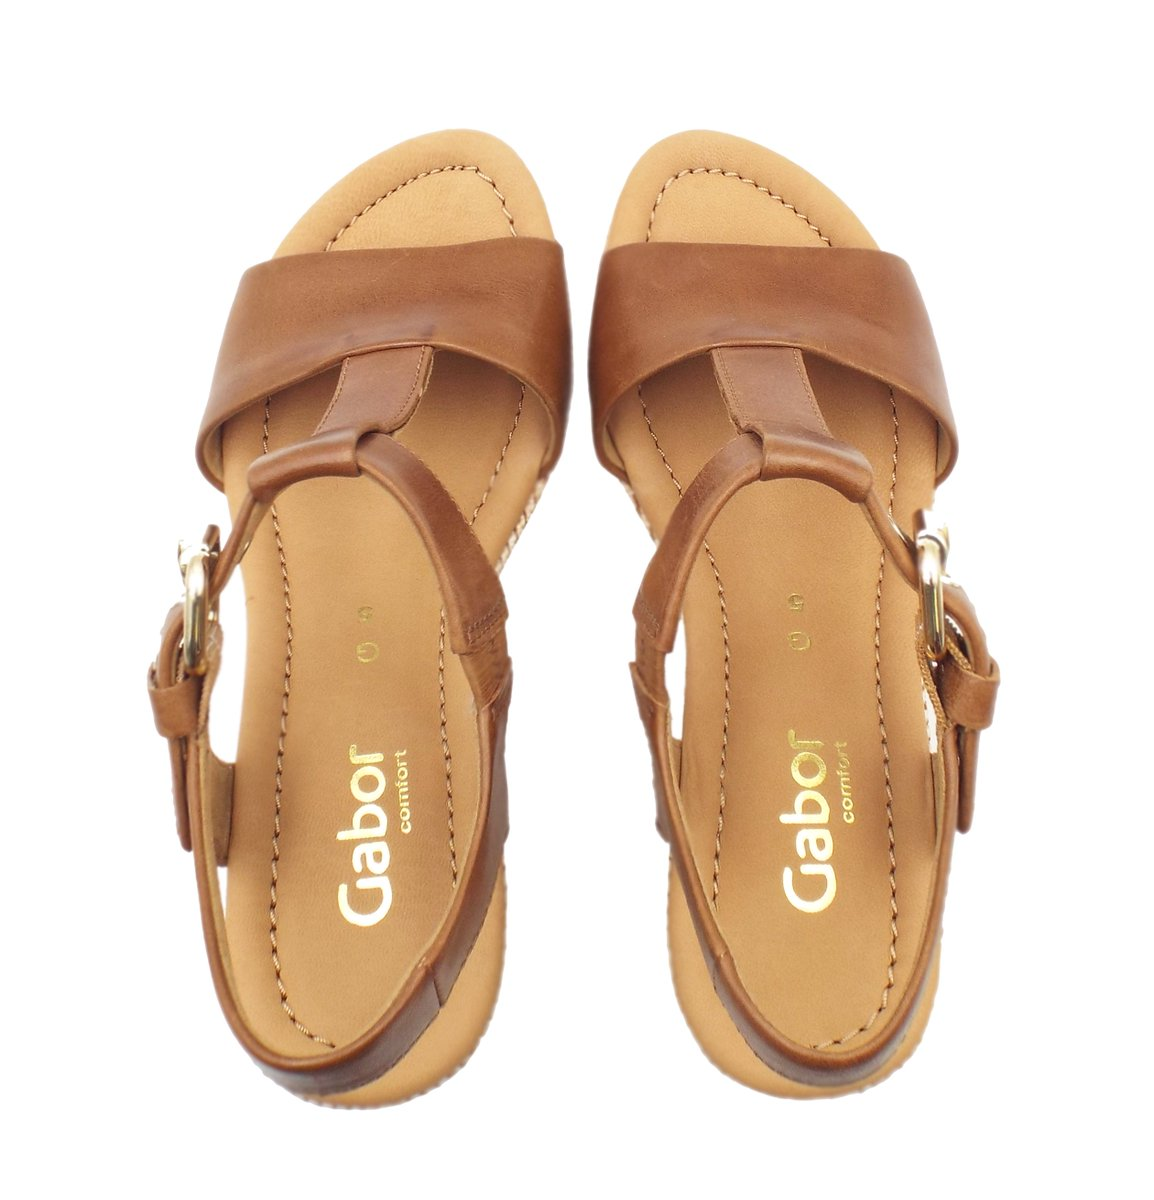 acbfe8d813ba1 ... style and Mozimo favourite, grab yours now >> http://ow.ly/ViOP30owh9I  FREE UK Delivery #new #gabor #sandals #summer #karen pic.twitter.com/hr87QErnIS